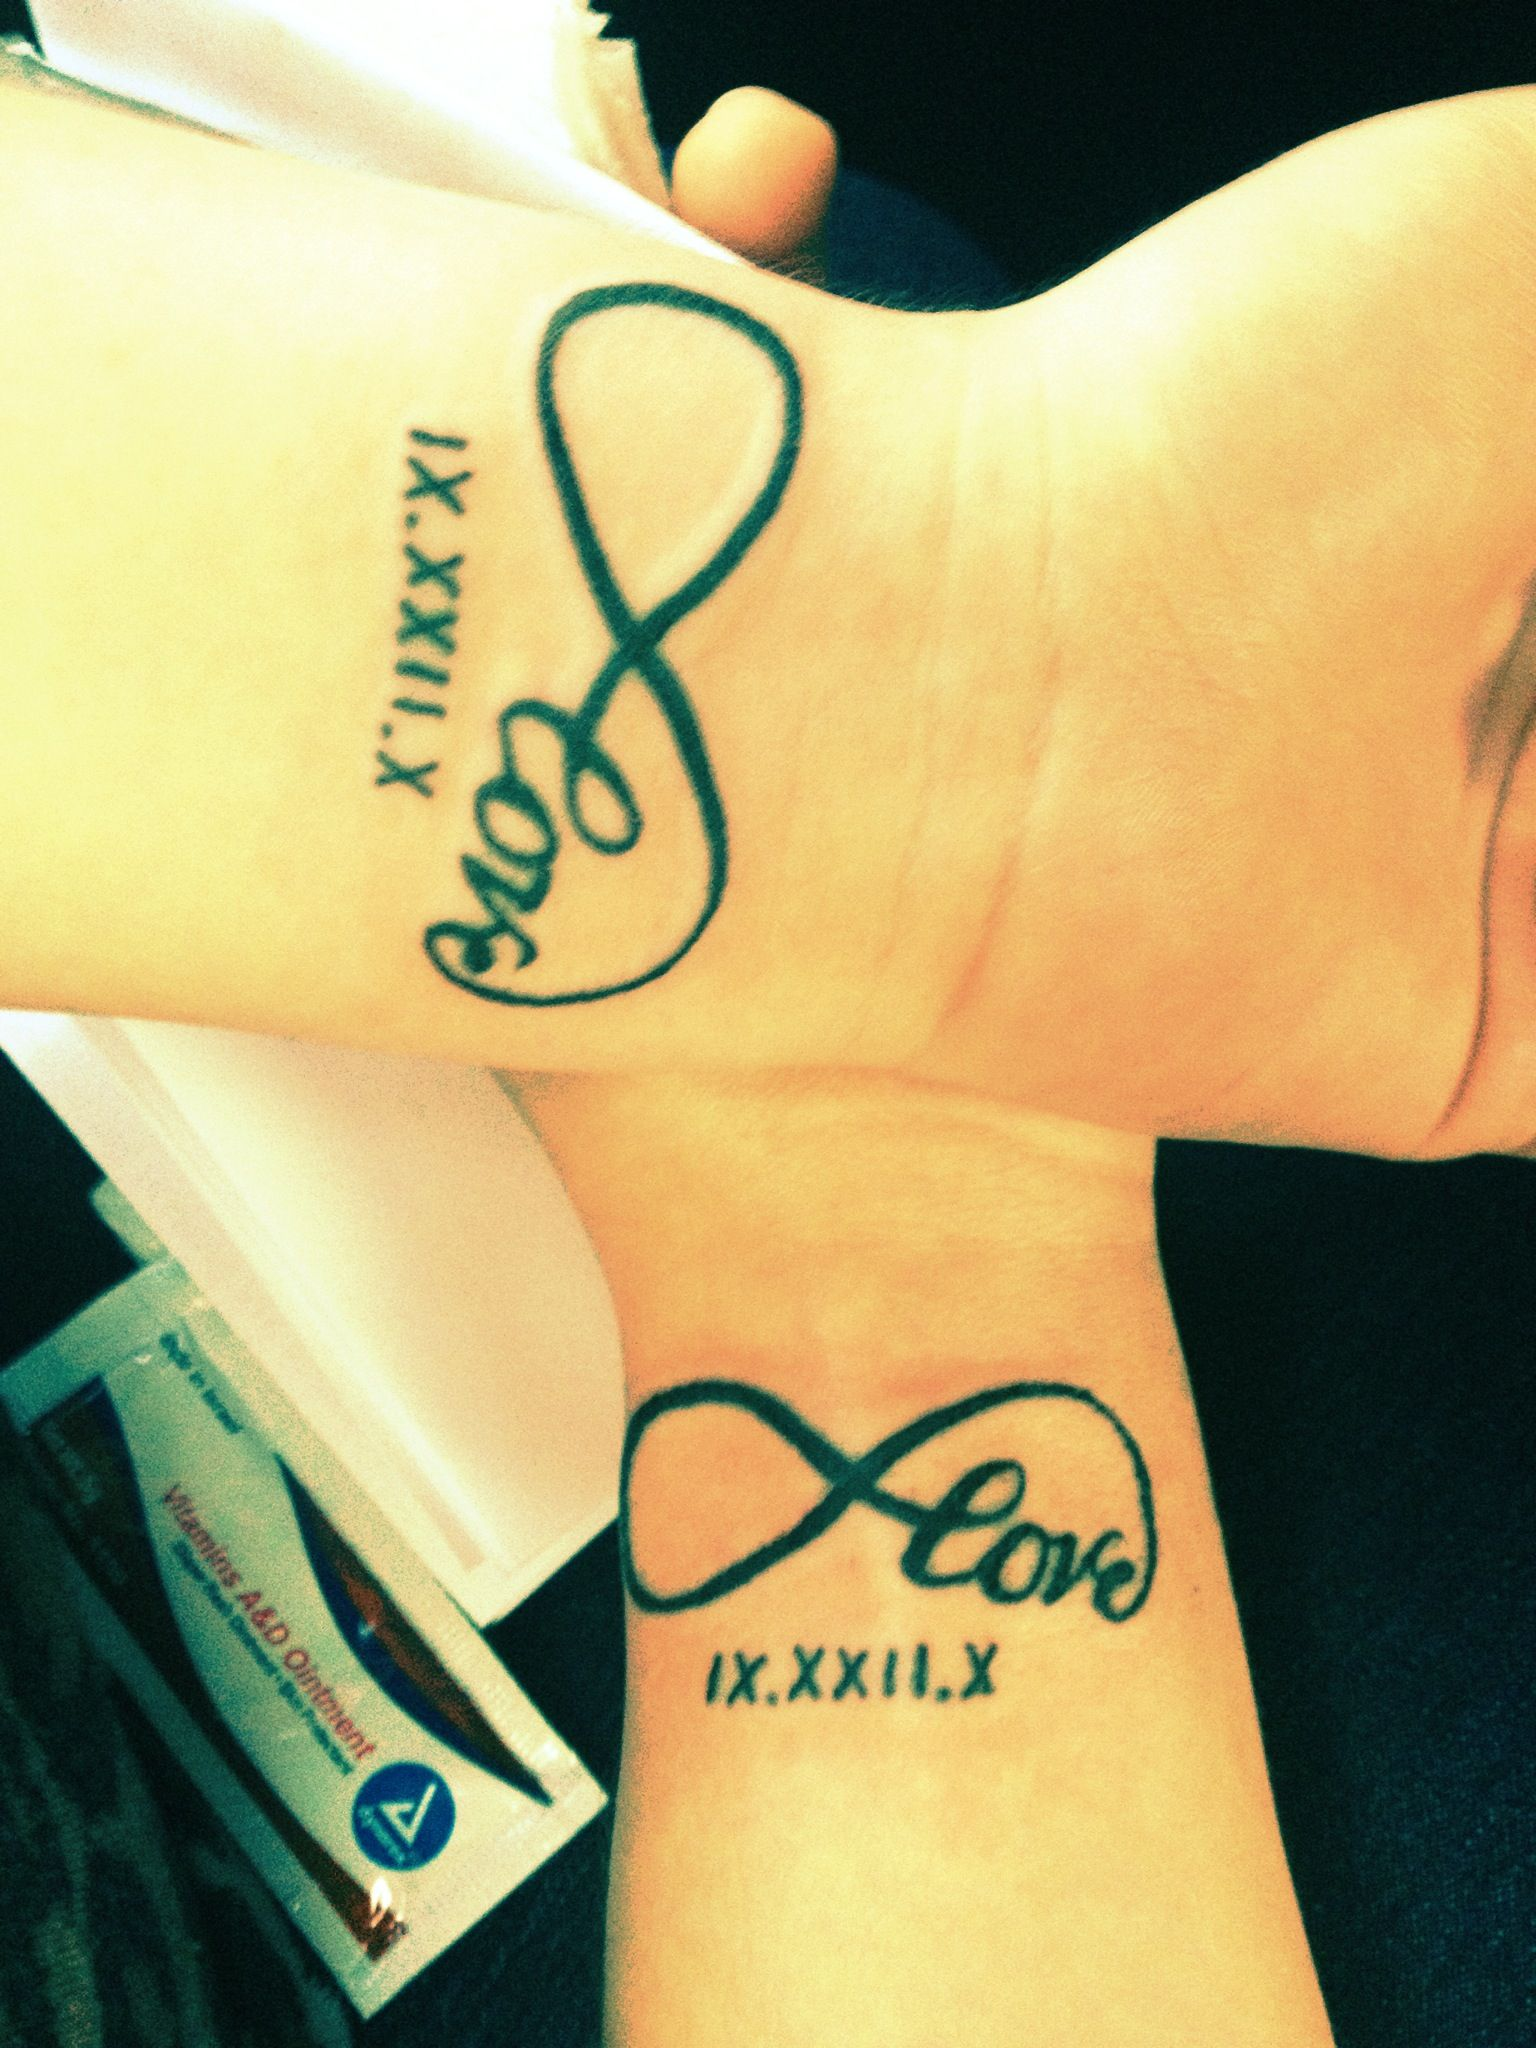 4fd413bb5 Couple tattoo, love infinity with the date in Roman numerals on wrist.